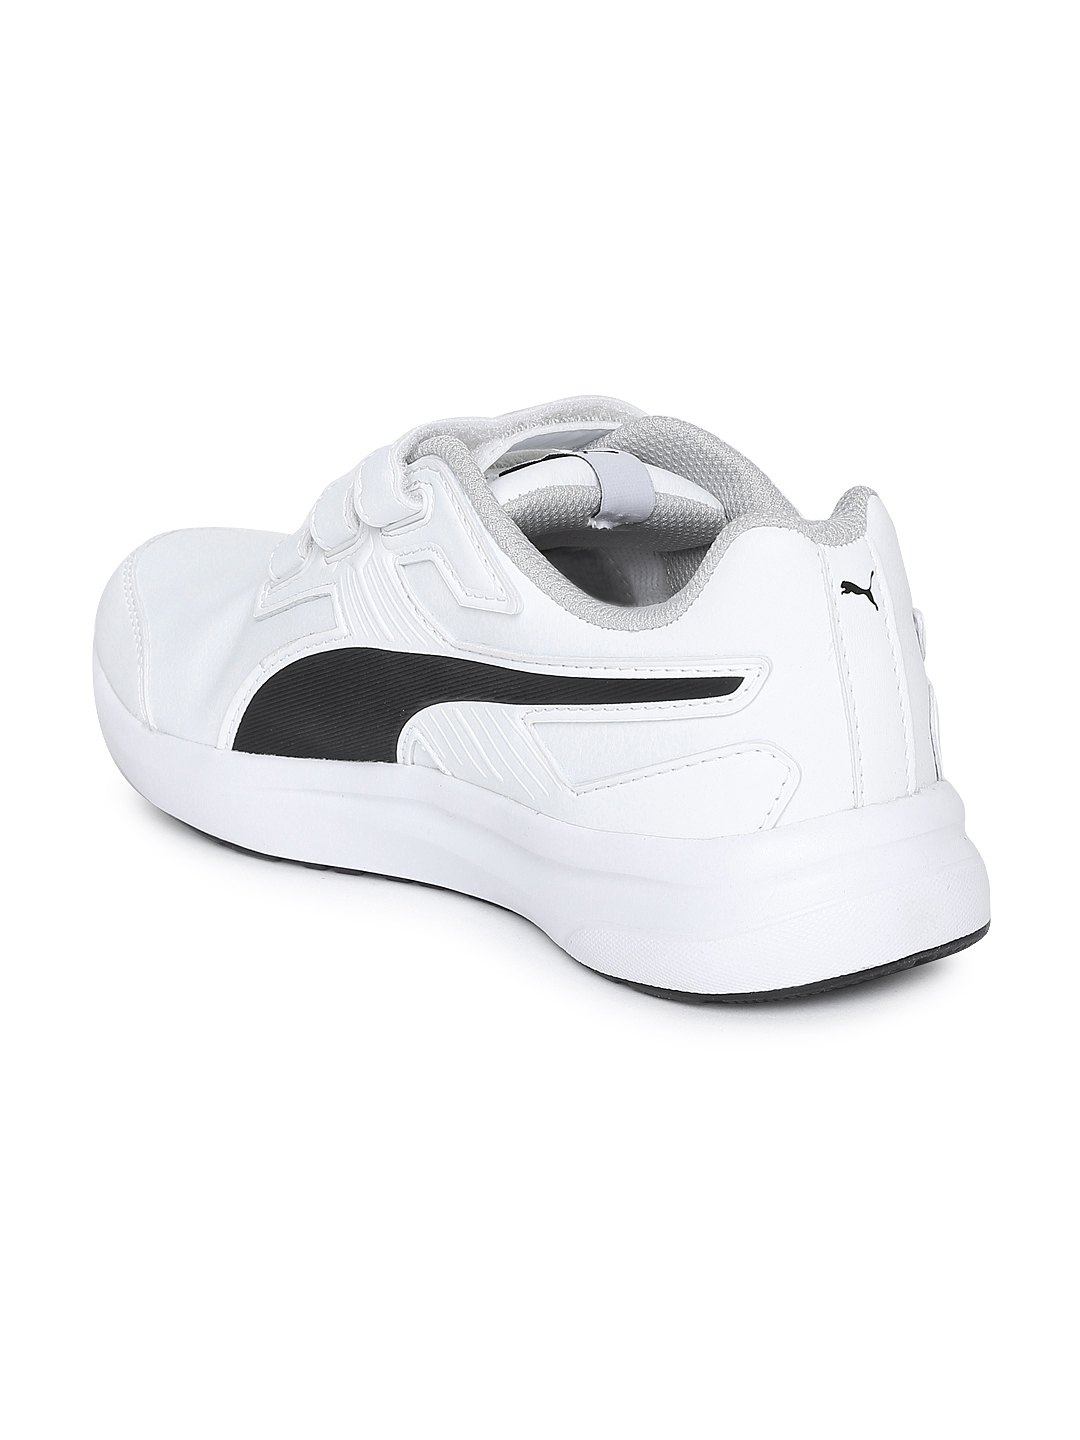 32a44bf9574 Buy Puma Unisex White Escaper SL V Jr Sneakers - Casual Shoes for ...